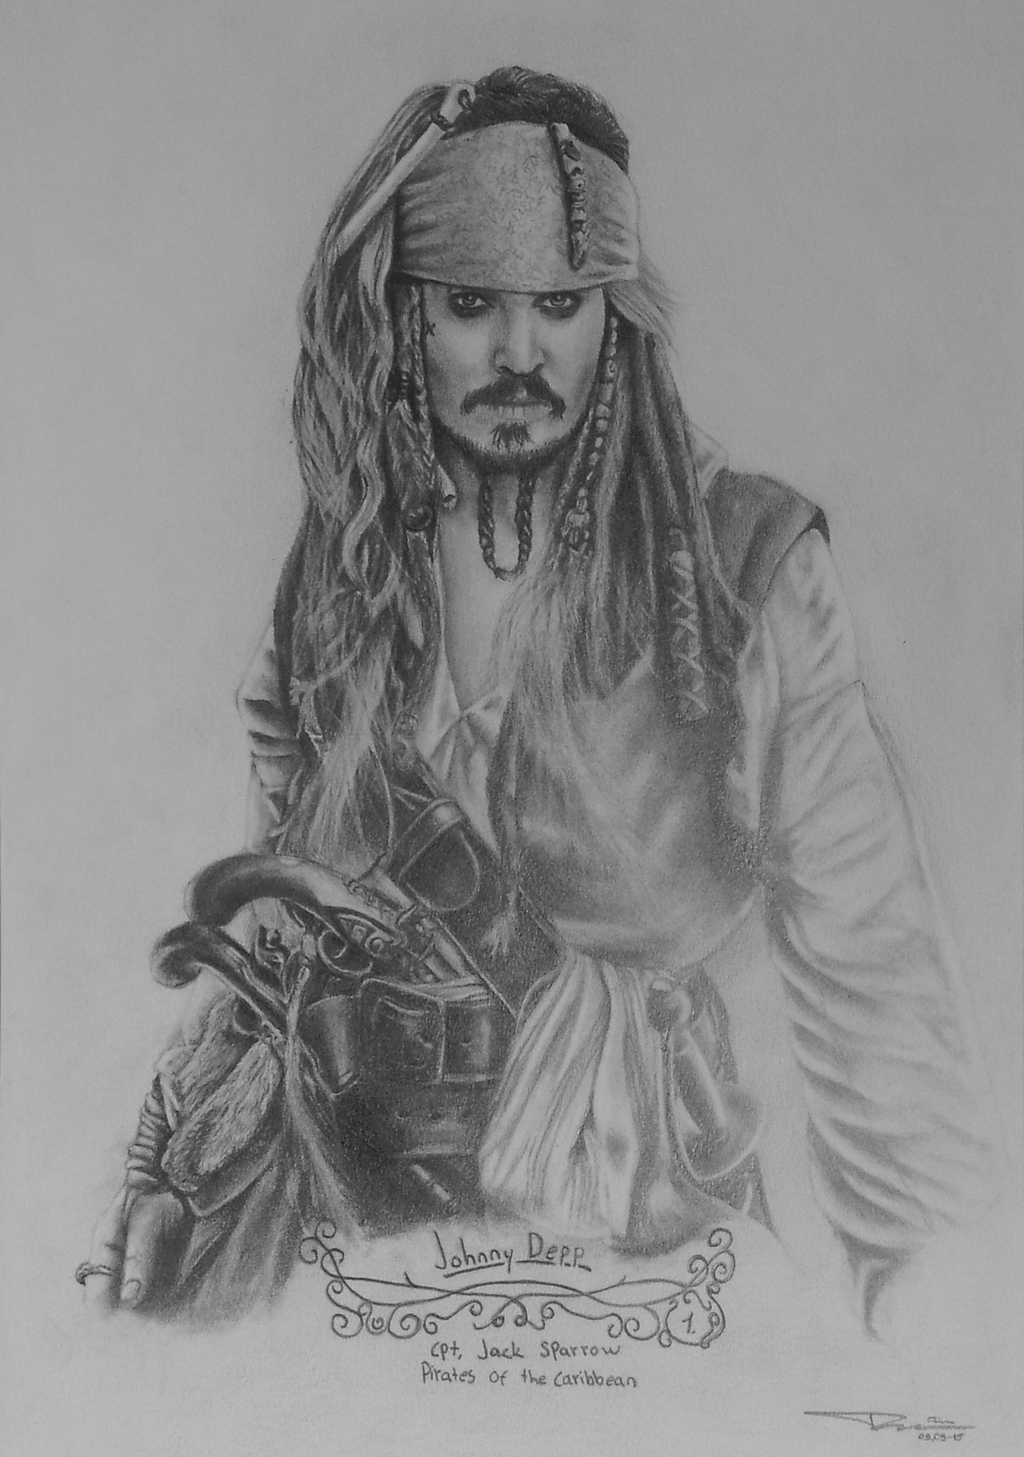 Jack Sparrow pencil drawing by ArtDitional92 on DeviantArt